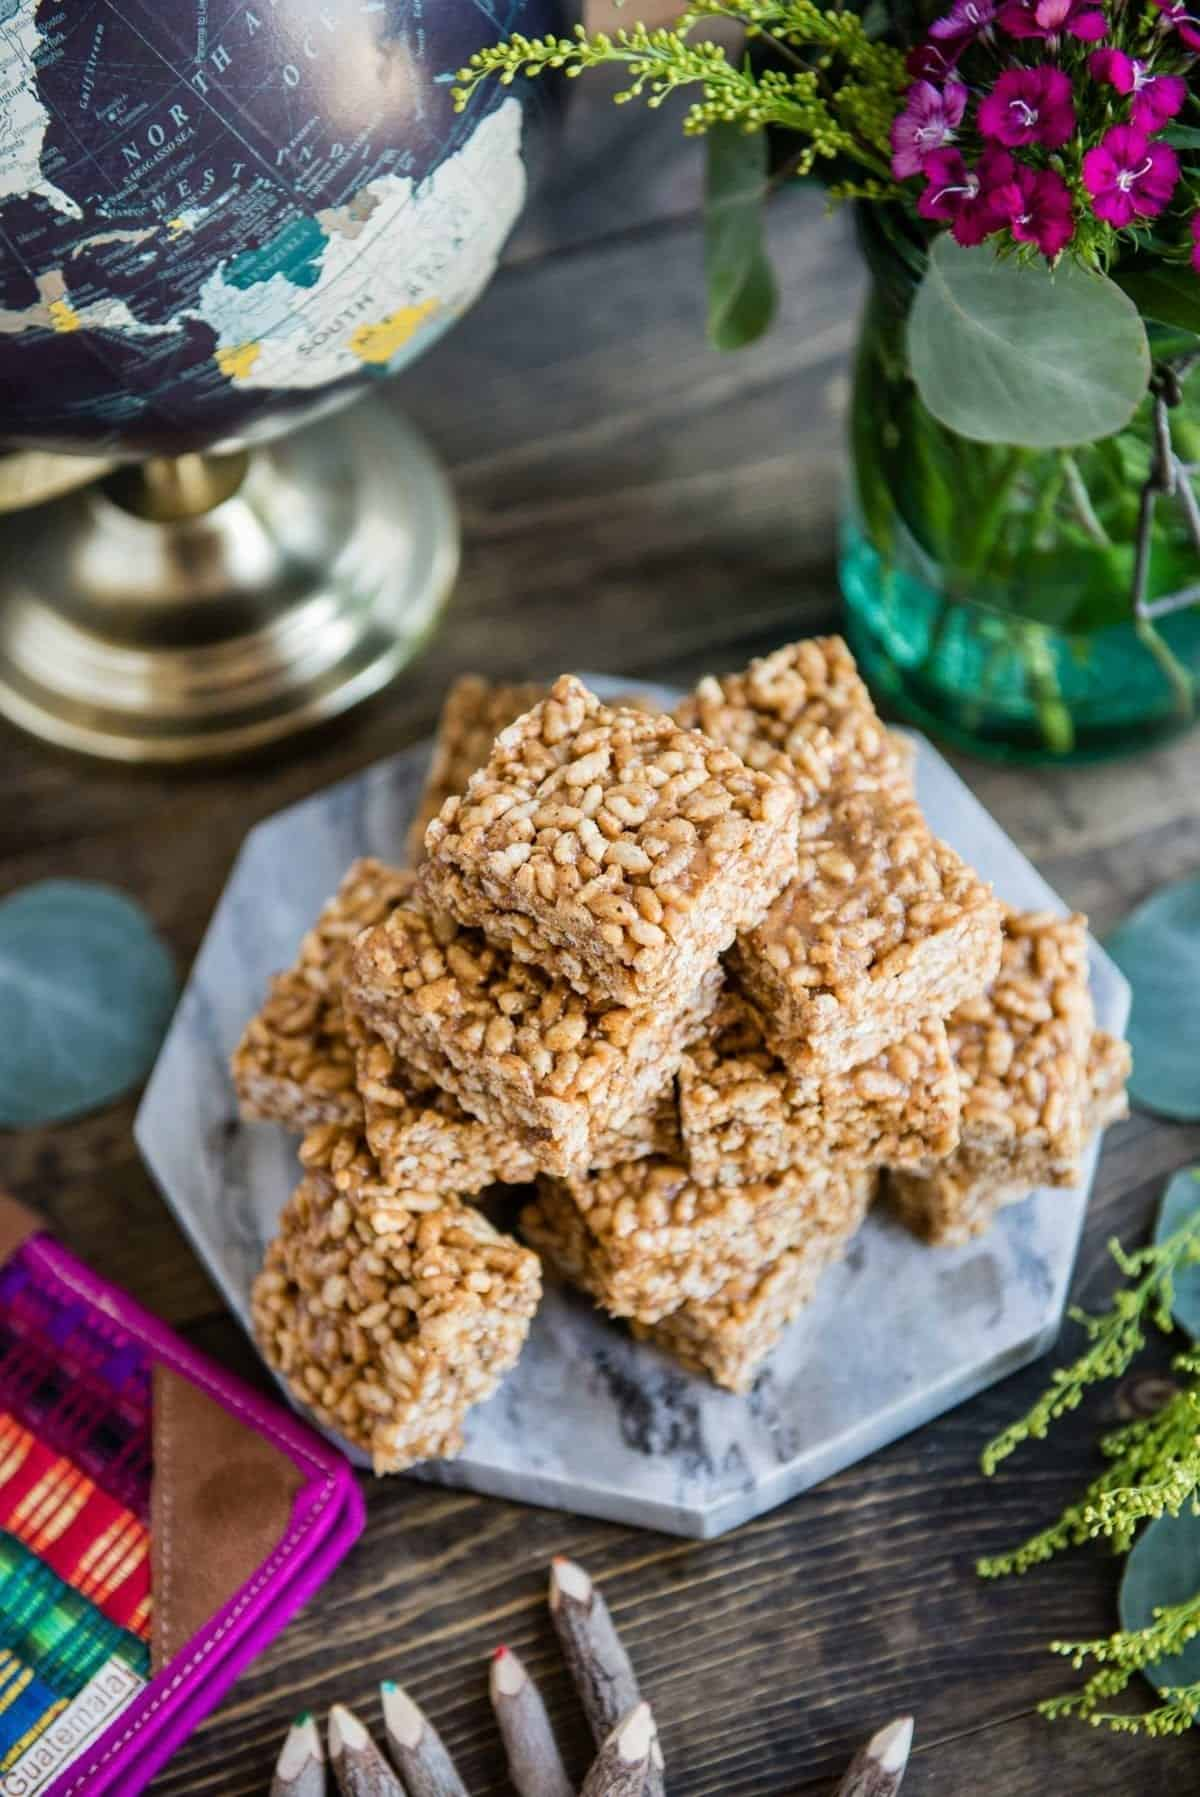 Rice Crispy Treat Recipe for Healthy Kids Snack